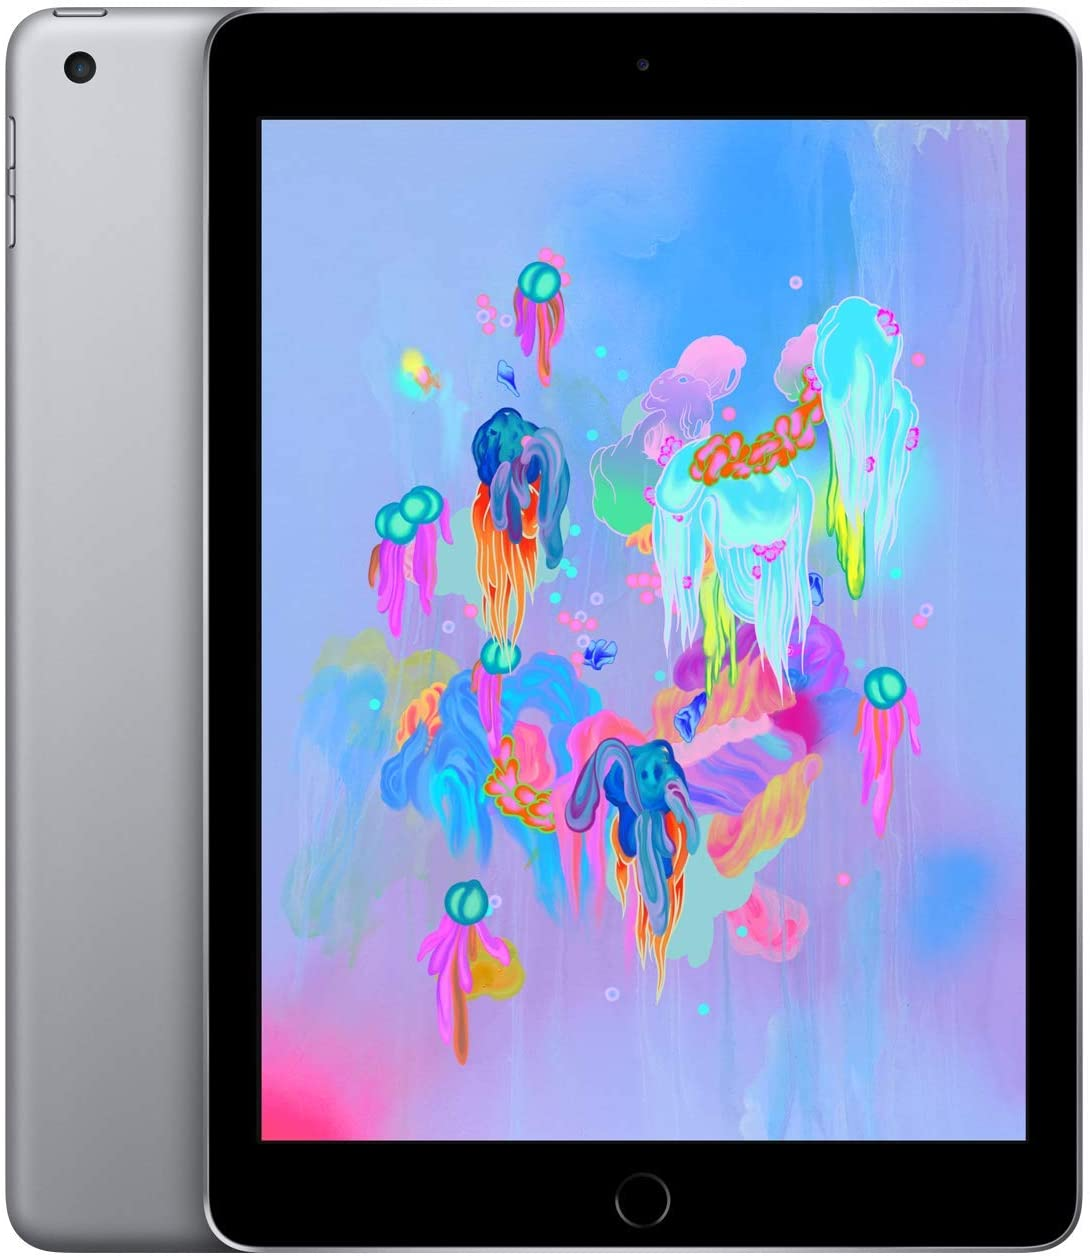 Apple iPad 2018 32GB, Gold (Renewed)